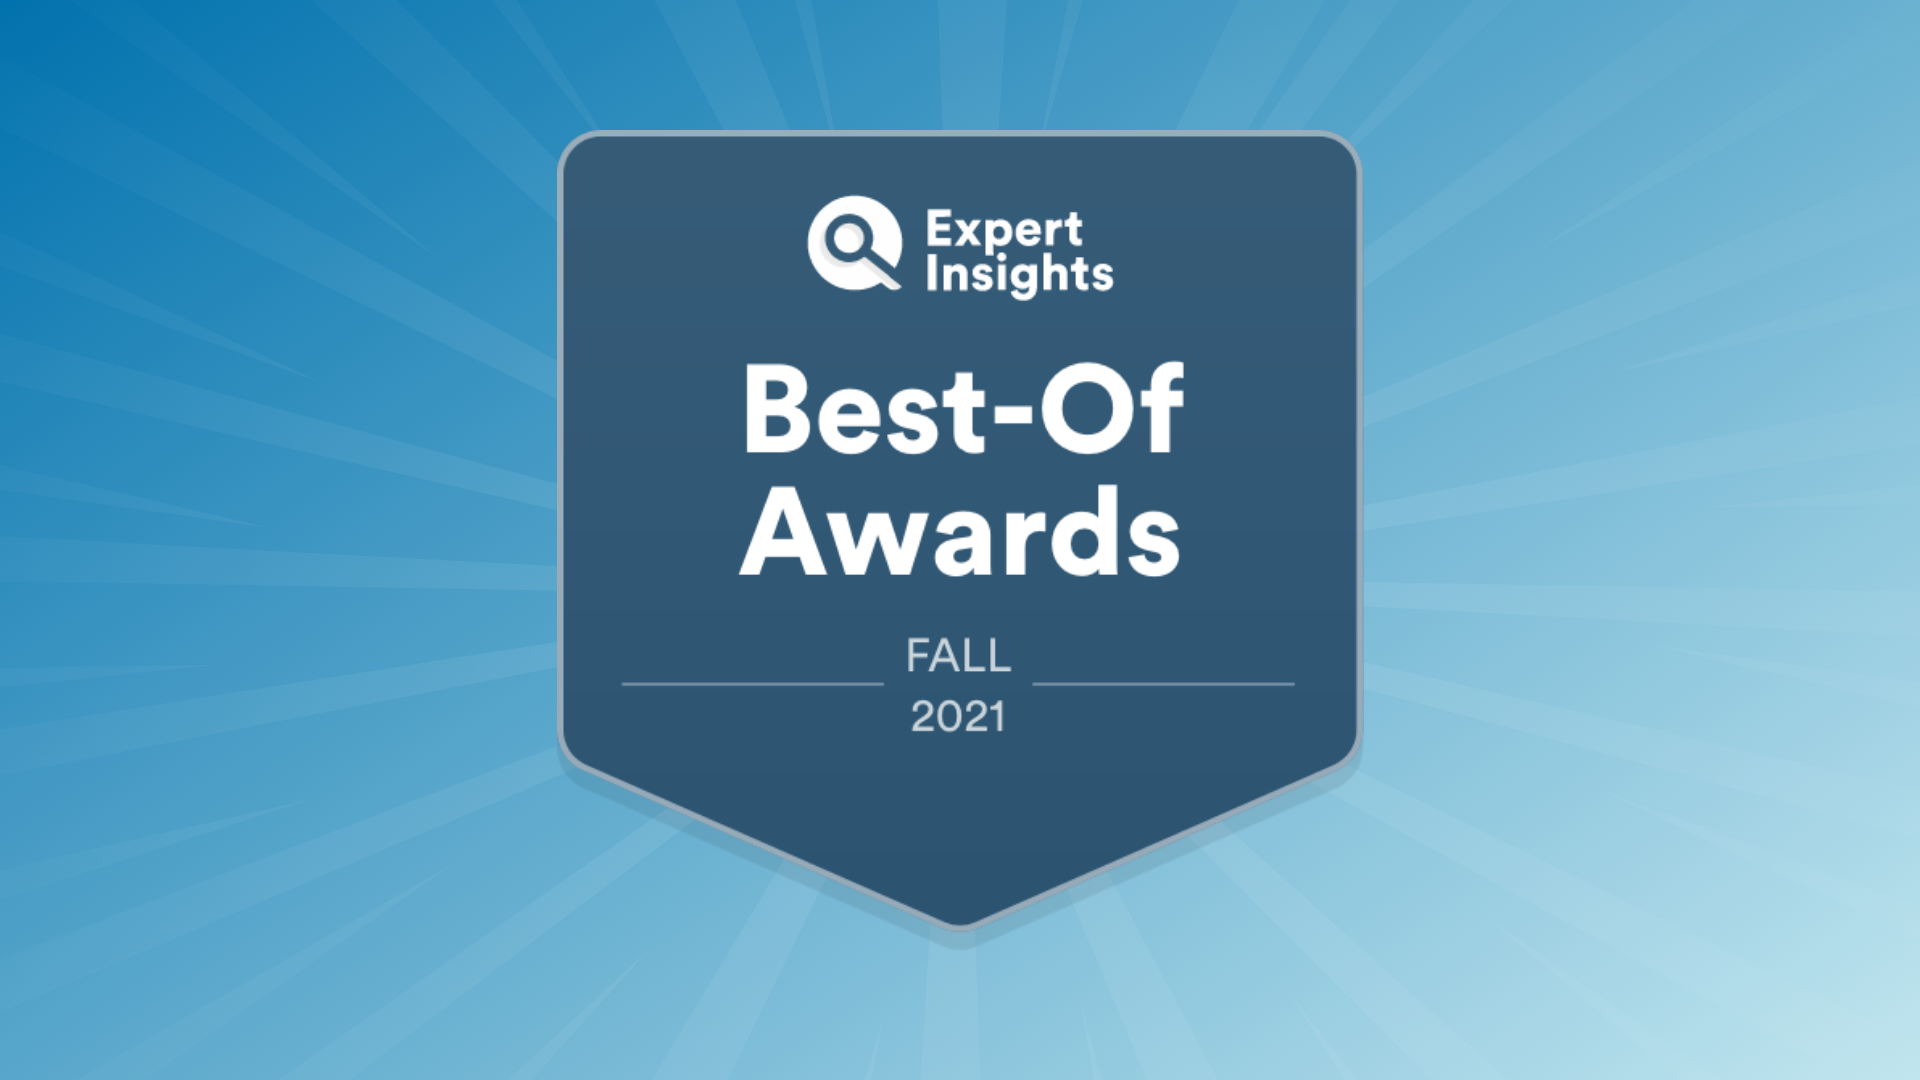 Prove Wins 3 Expert Insights Awards for Fall 2021